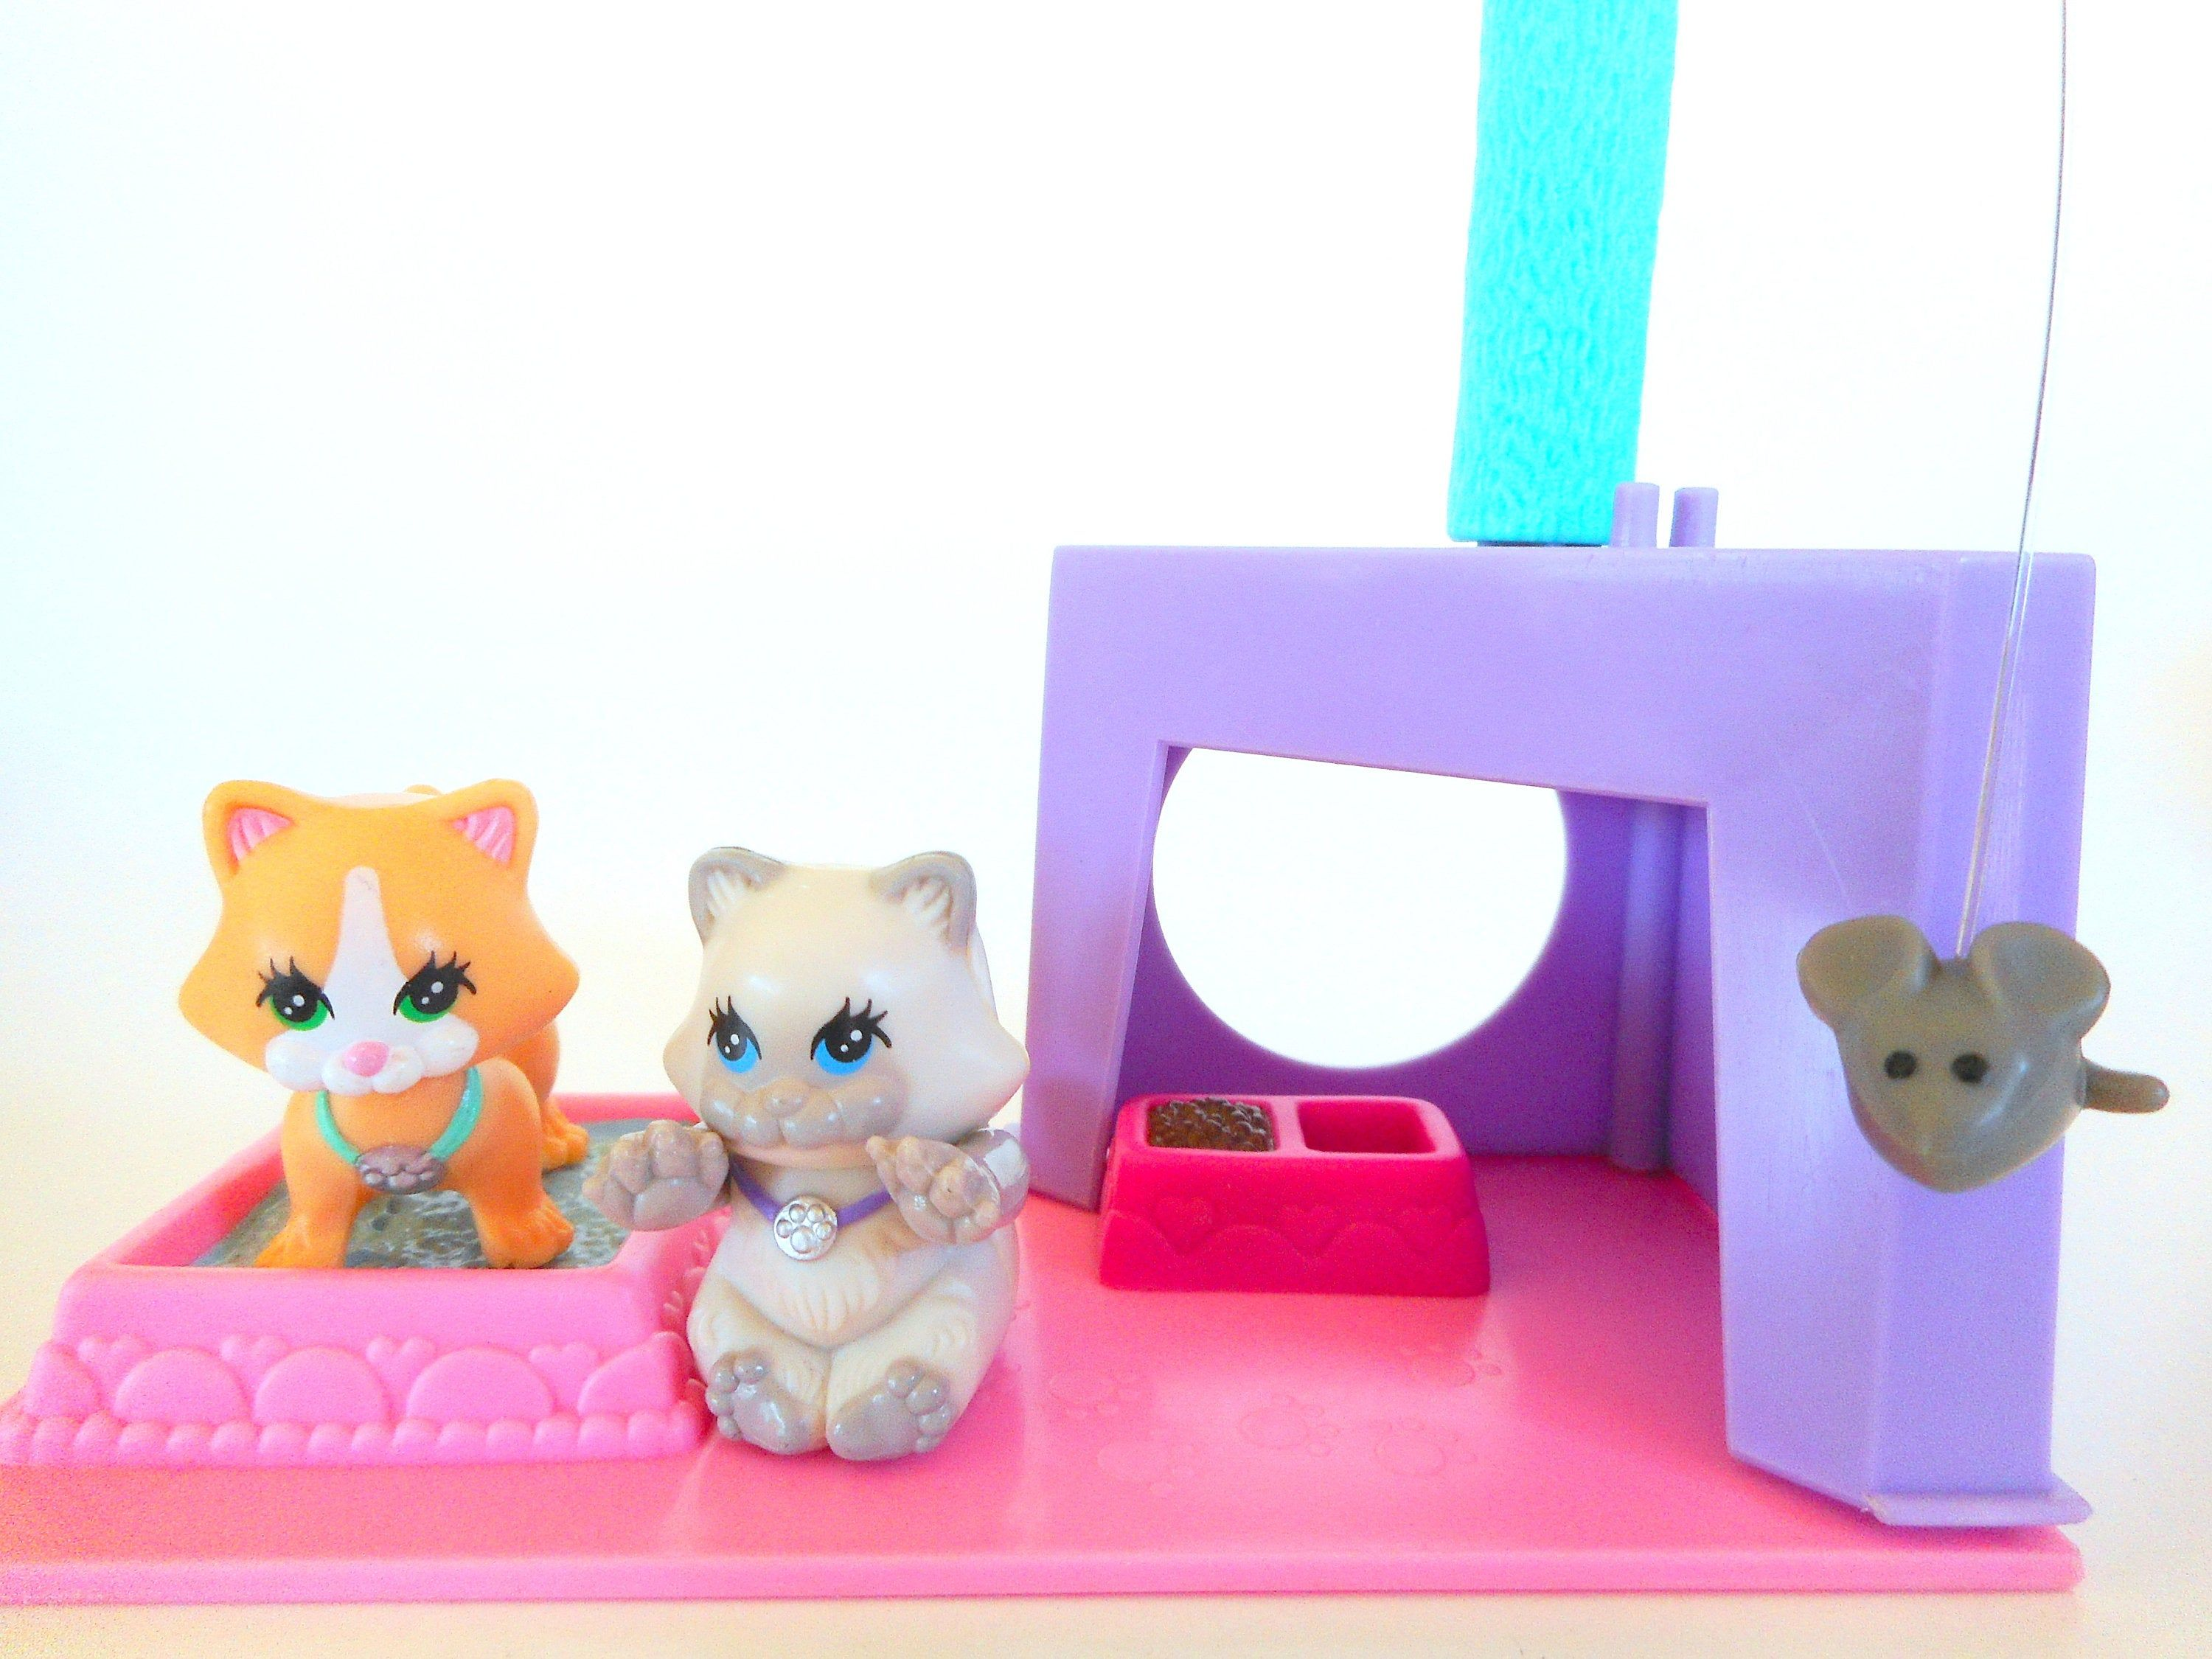 Vintage Littlest Pet Shop Cutesy Kittens With Kitten Playhouse Cat Playset By Kenner 1992 Littlest Pet Shop Little Pets Little Pet Shop